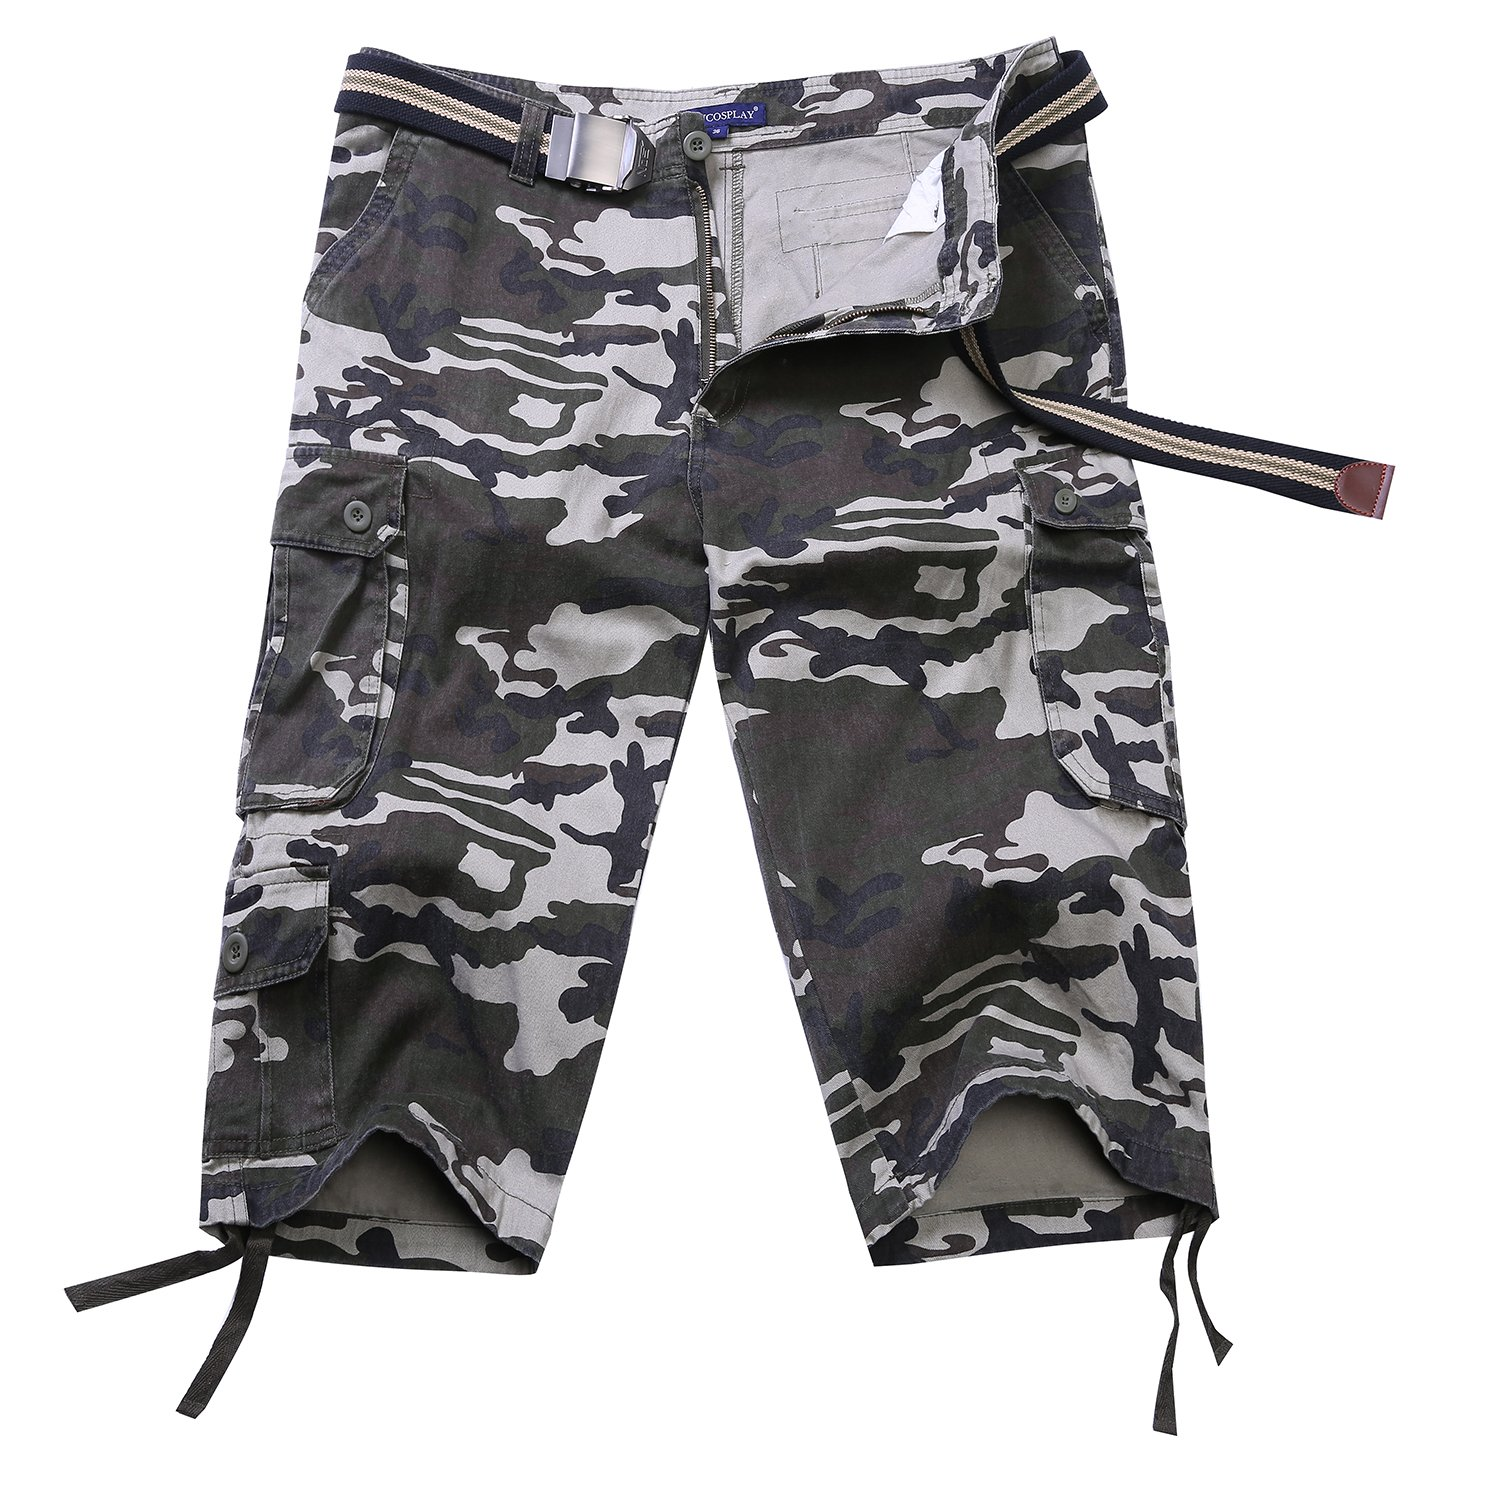 Men Loose Fit Twill Camo Cargo Shorts Cougar Multi-Pockets Outdoors Pant (38, Khaki Camo)